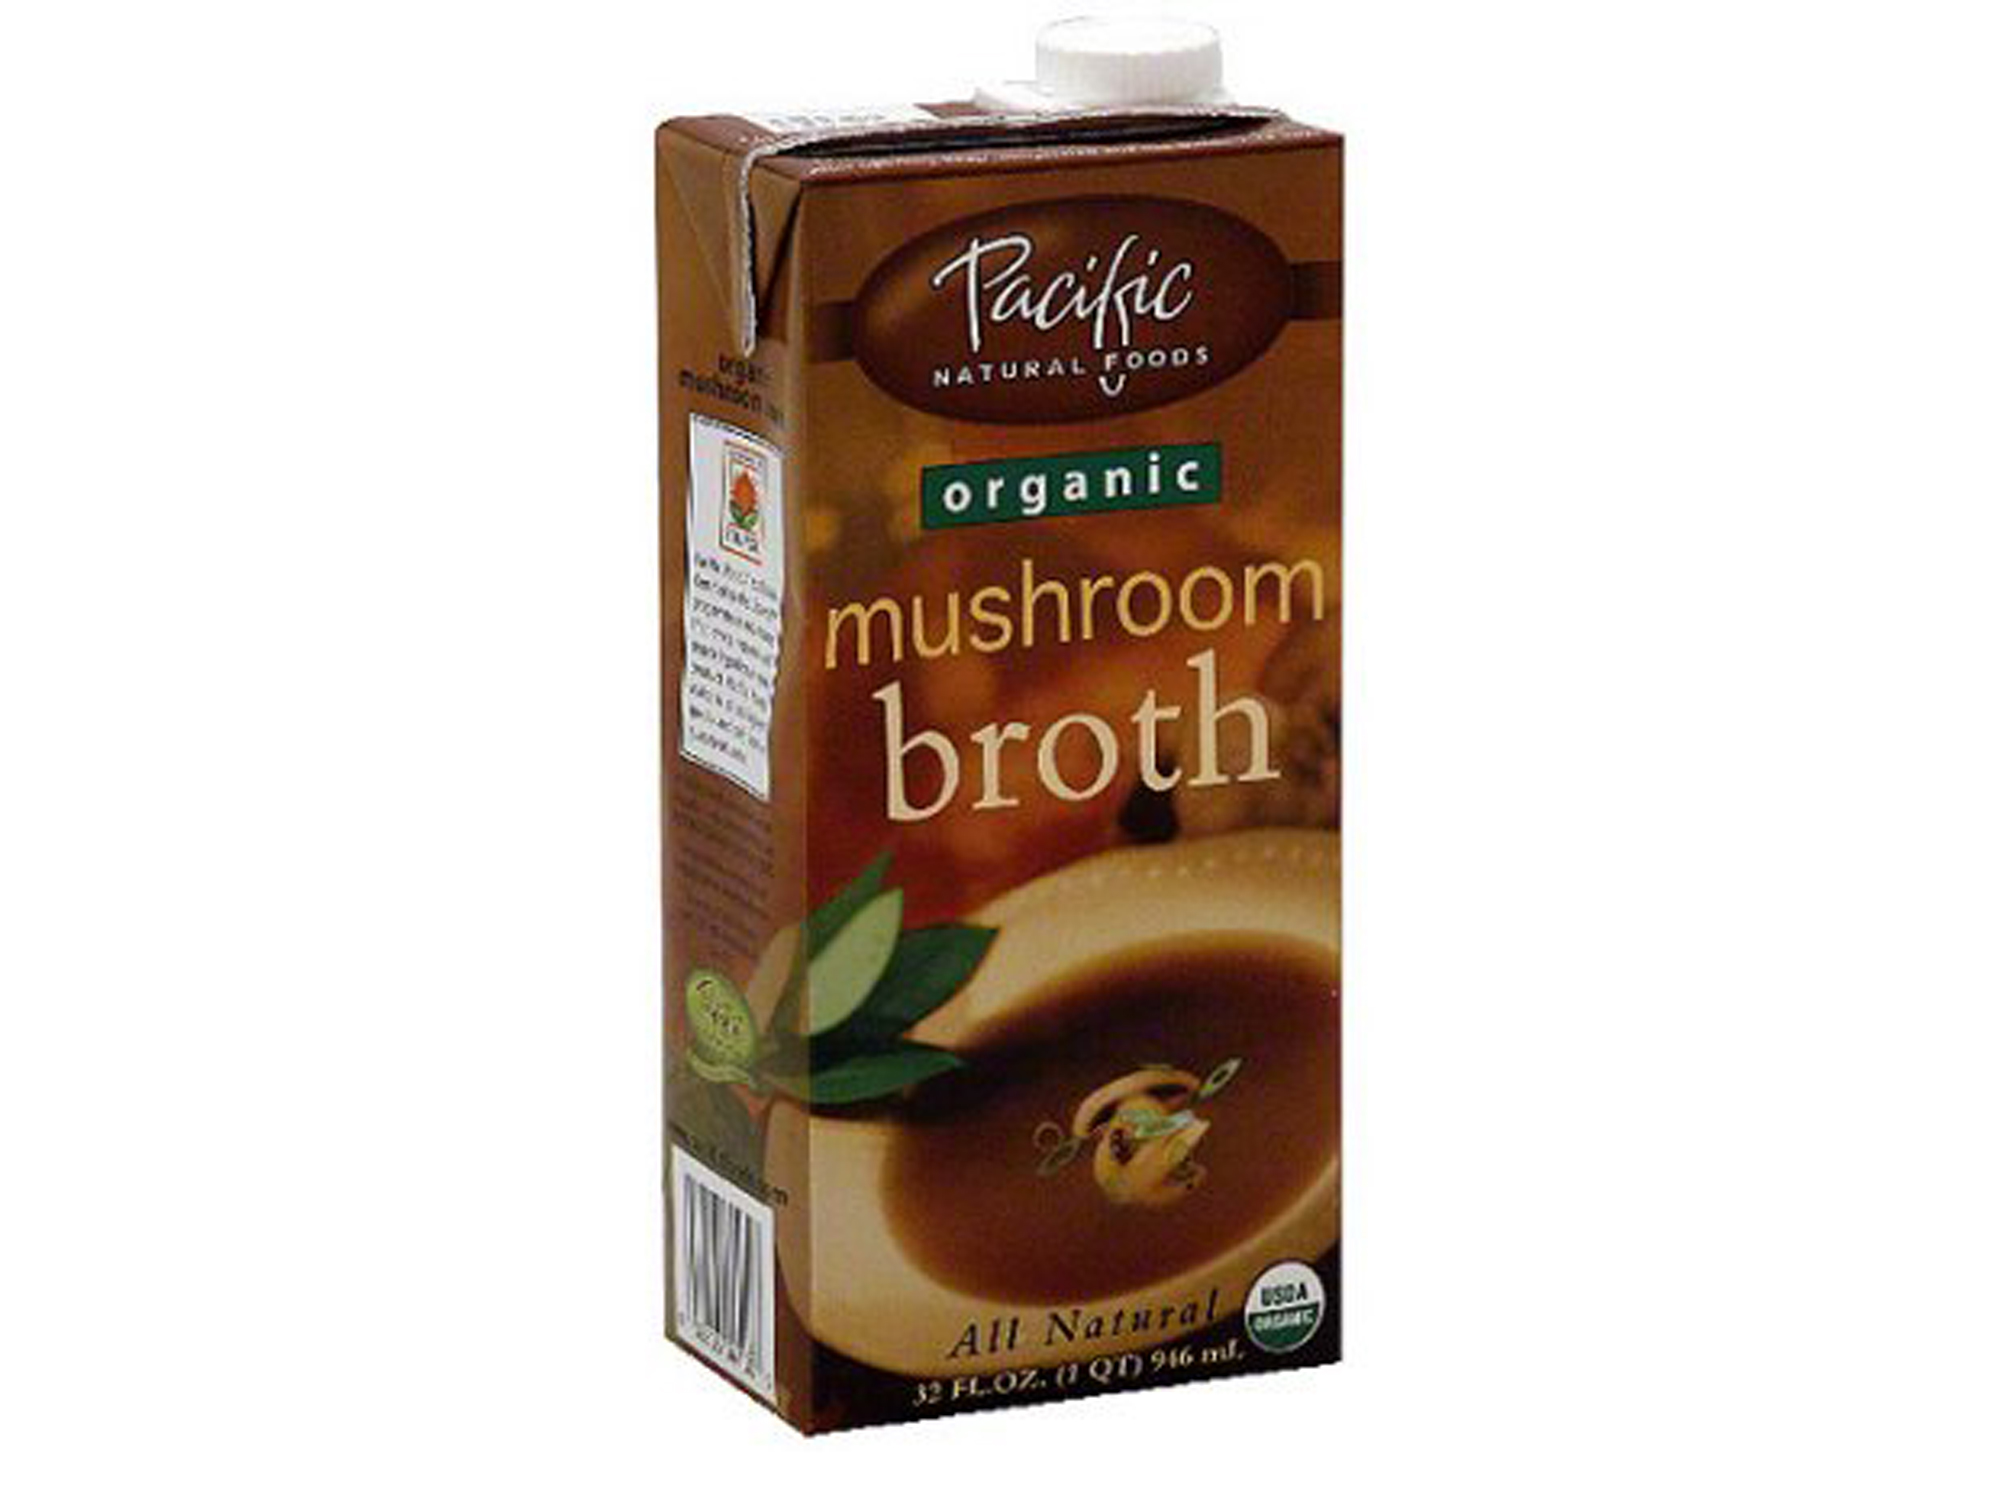 Pacific Foods Mushroom Broth